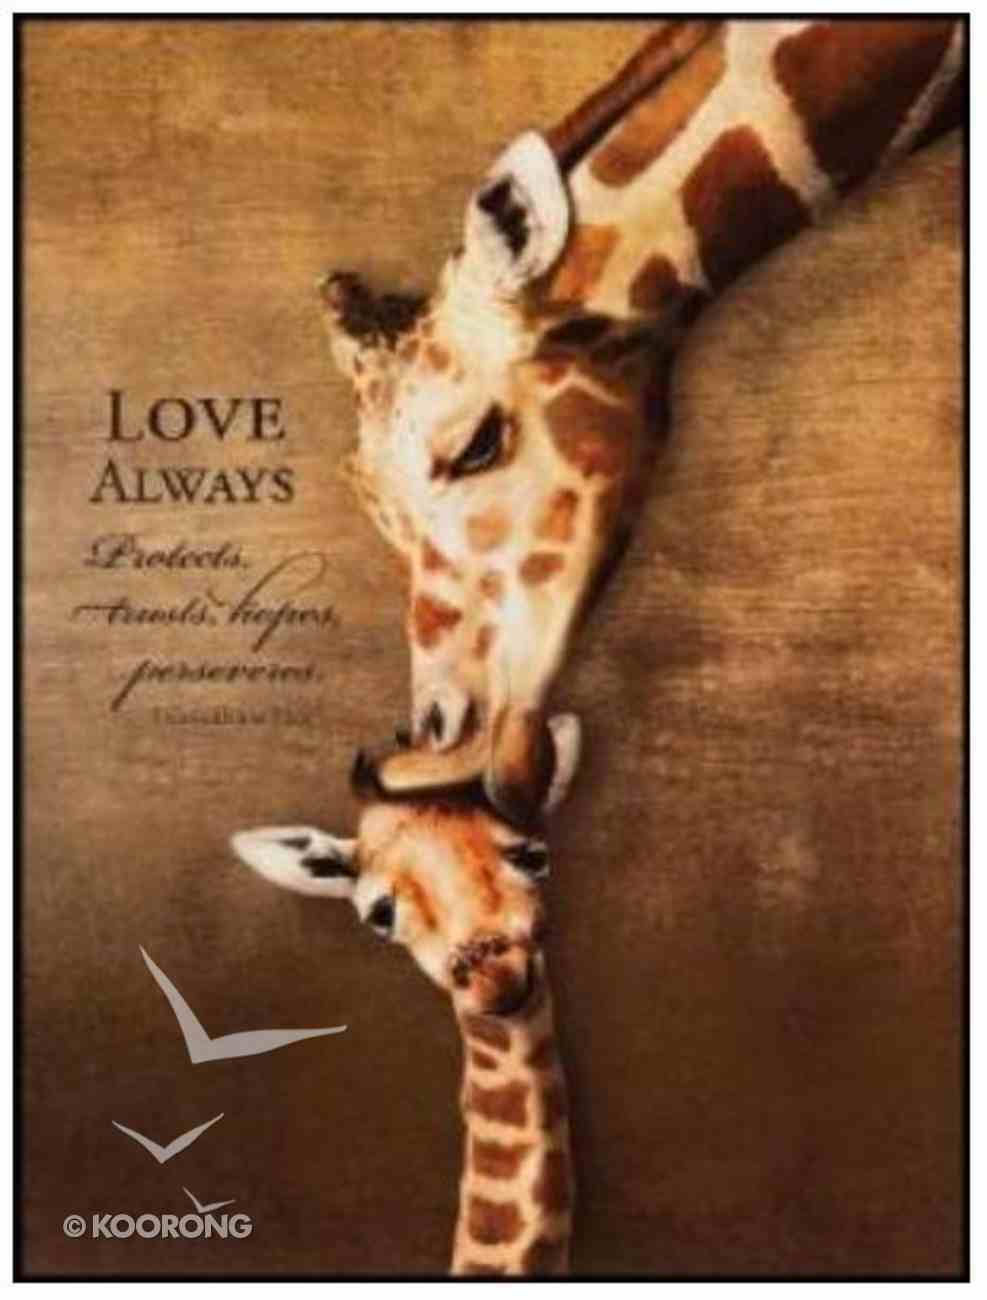 Mounted Print: Giraffe, Love Always Protects, 1 Corinthians 13:7, on Mdf Board Plaque